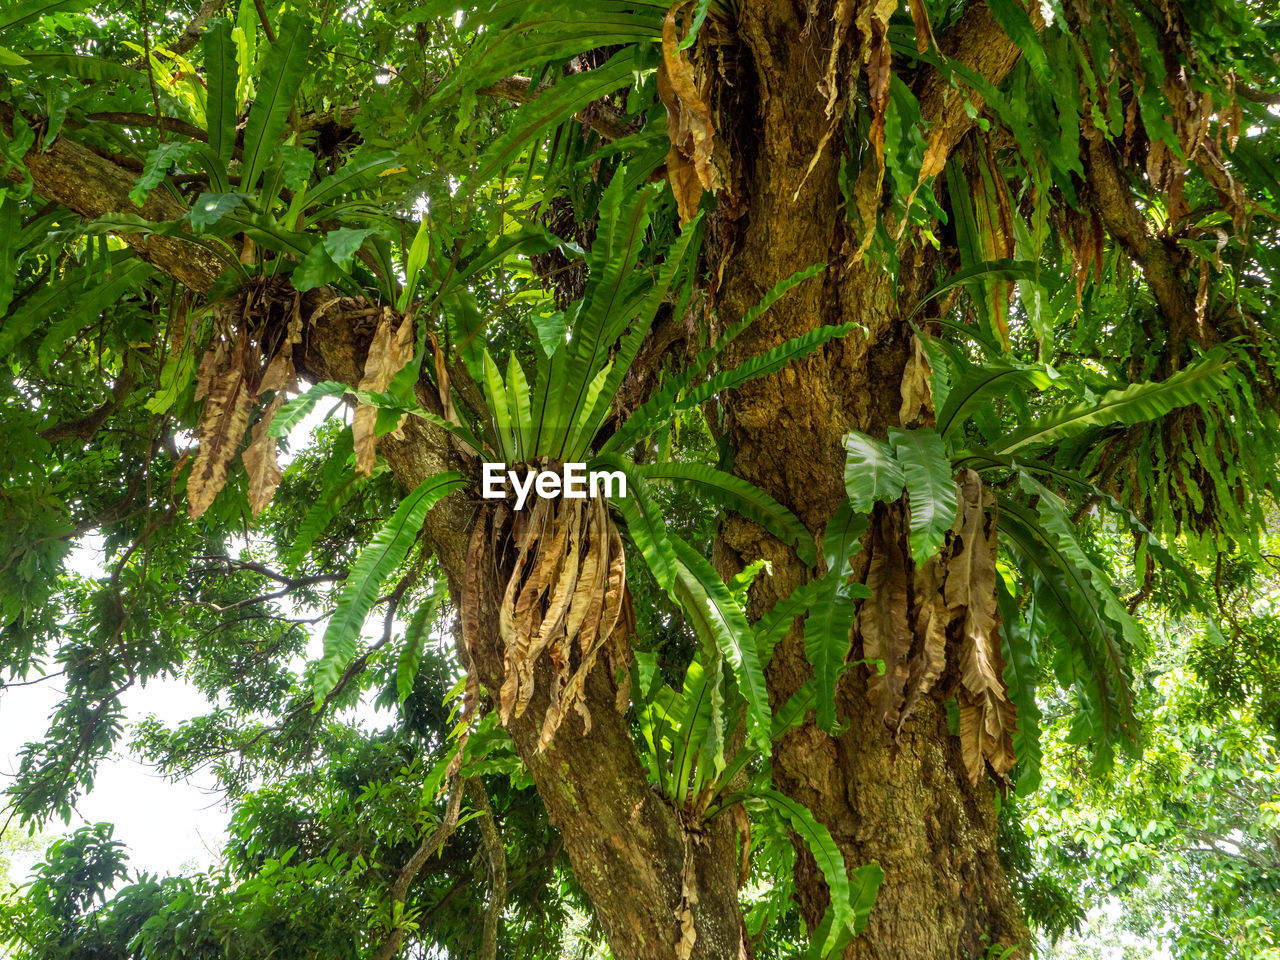 plant, tree, growth, tree trunk, trunk, nature, green color, no people, plant part, leaf, beauty in nature, tranquility, day, forest, outdoors, land, tropical climate, palm tree, branch, foliage, bark, tropical tree, tree canopy